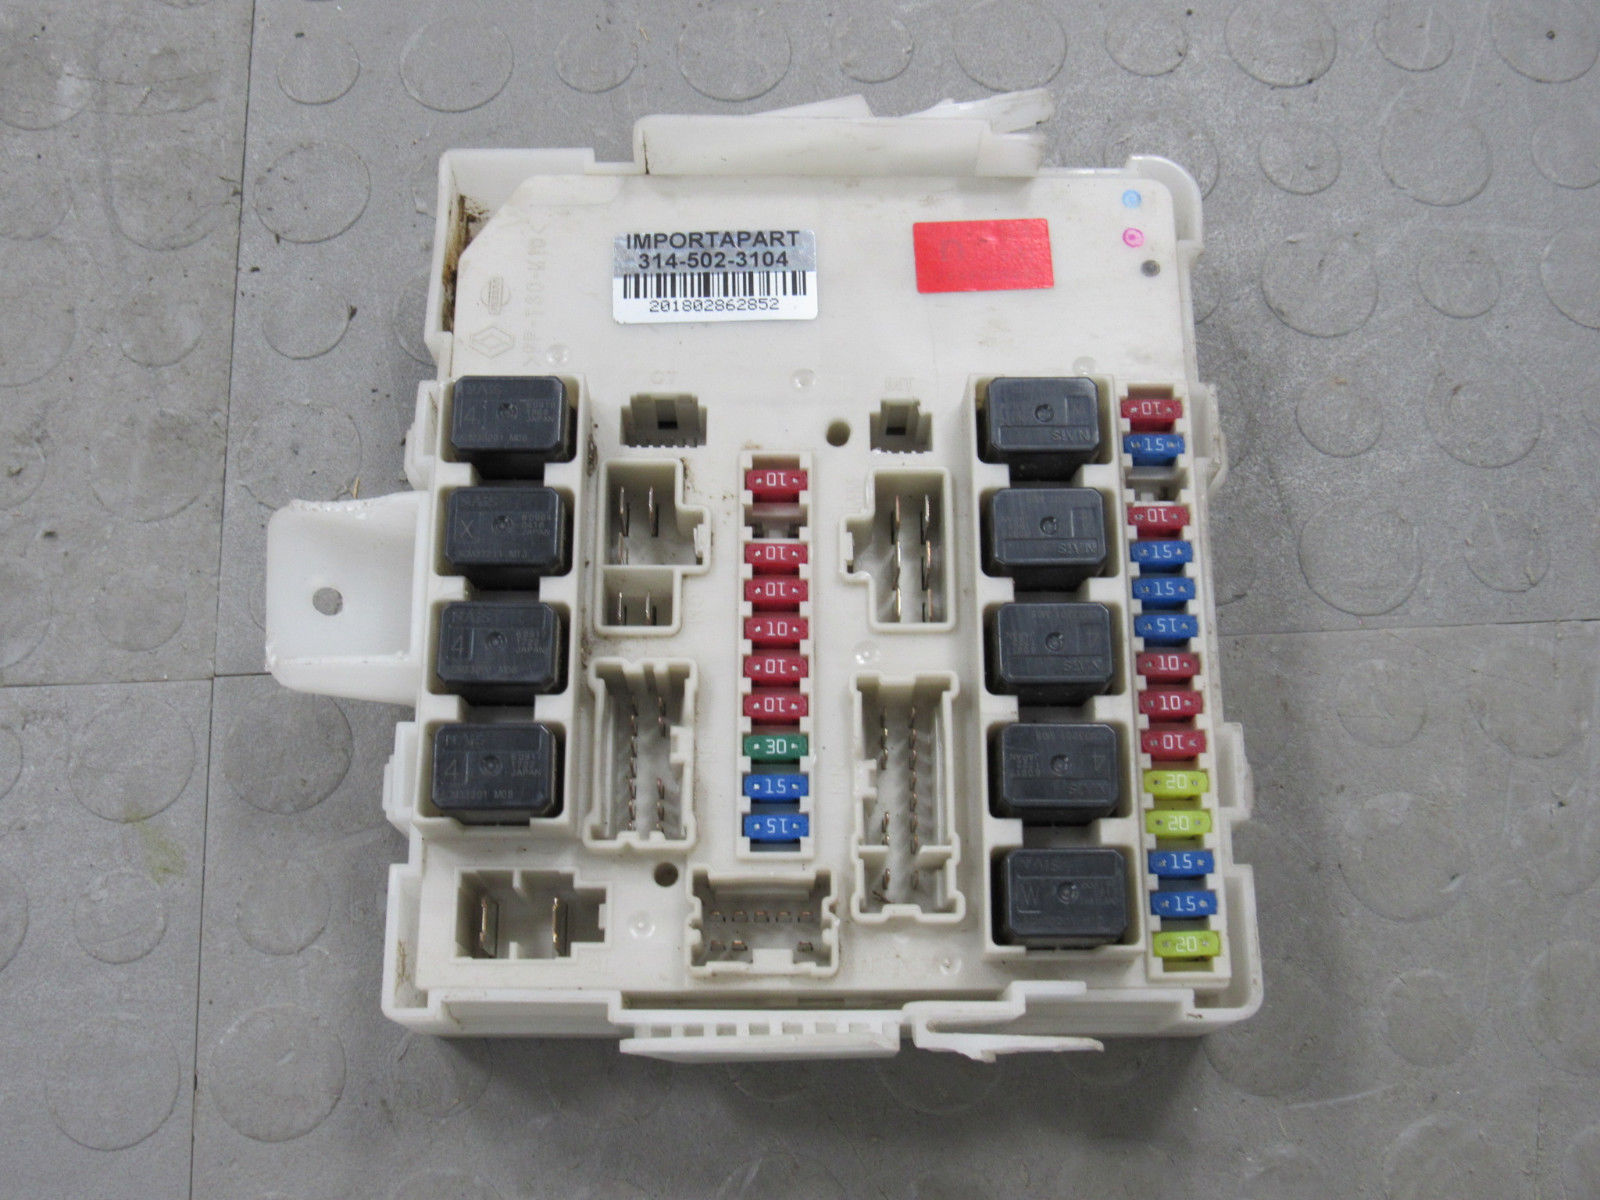 07 Titan Fuse Box Archive Of Automotive Wiring Diagram For 2005 Infiniti Qx56 09 Armada Xterra Ipdm Bcm Body Module 284b6 Rh Importapart Com